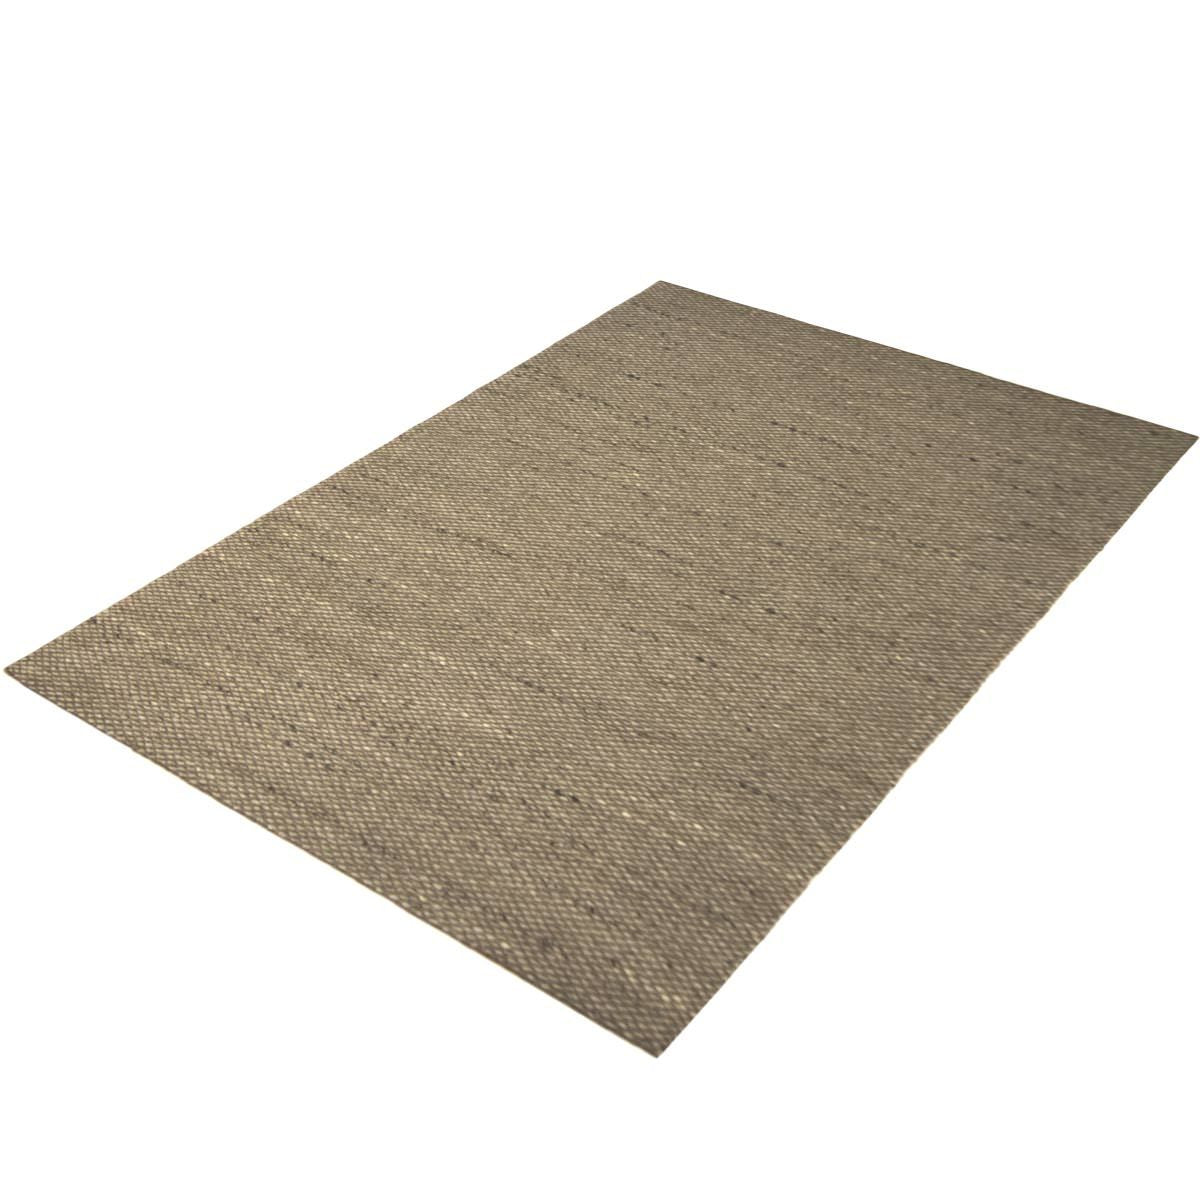 Arava Rug 01 Brown 3